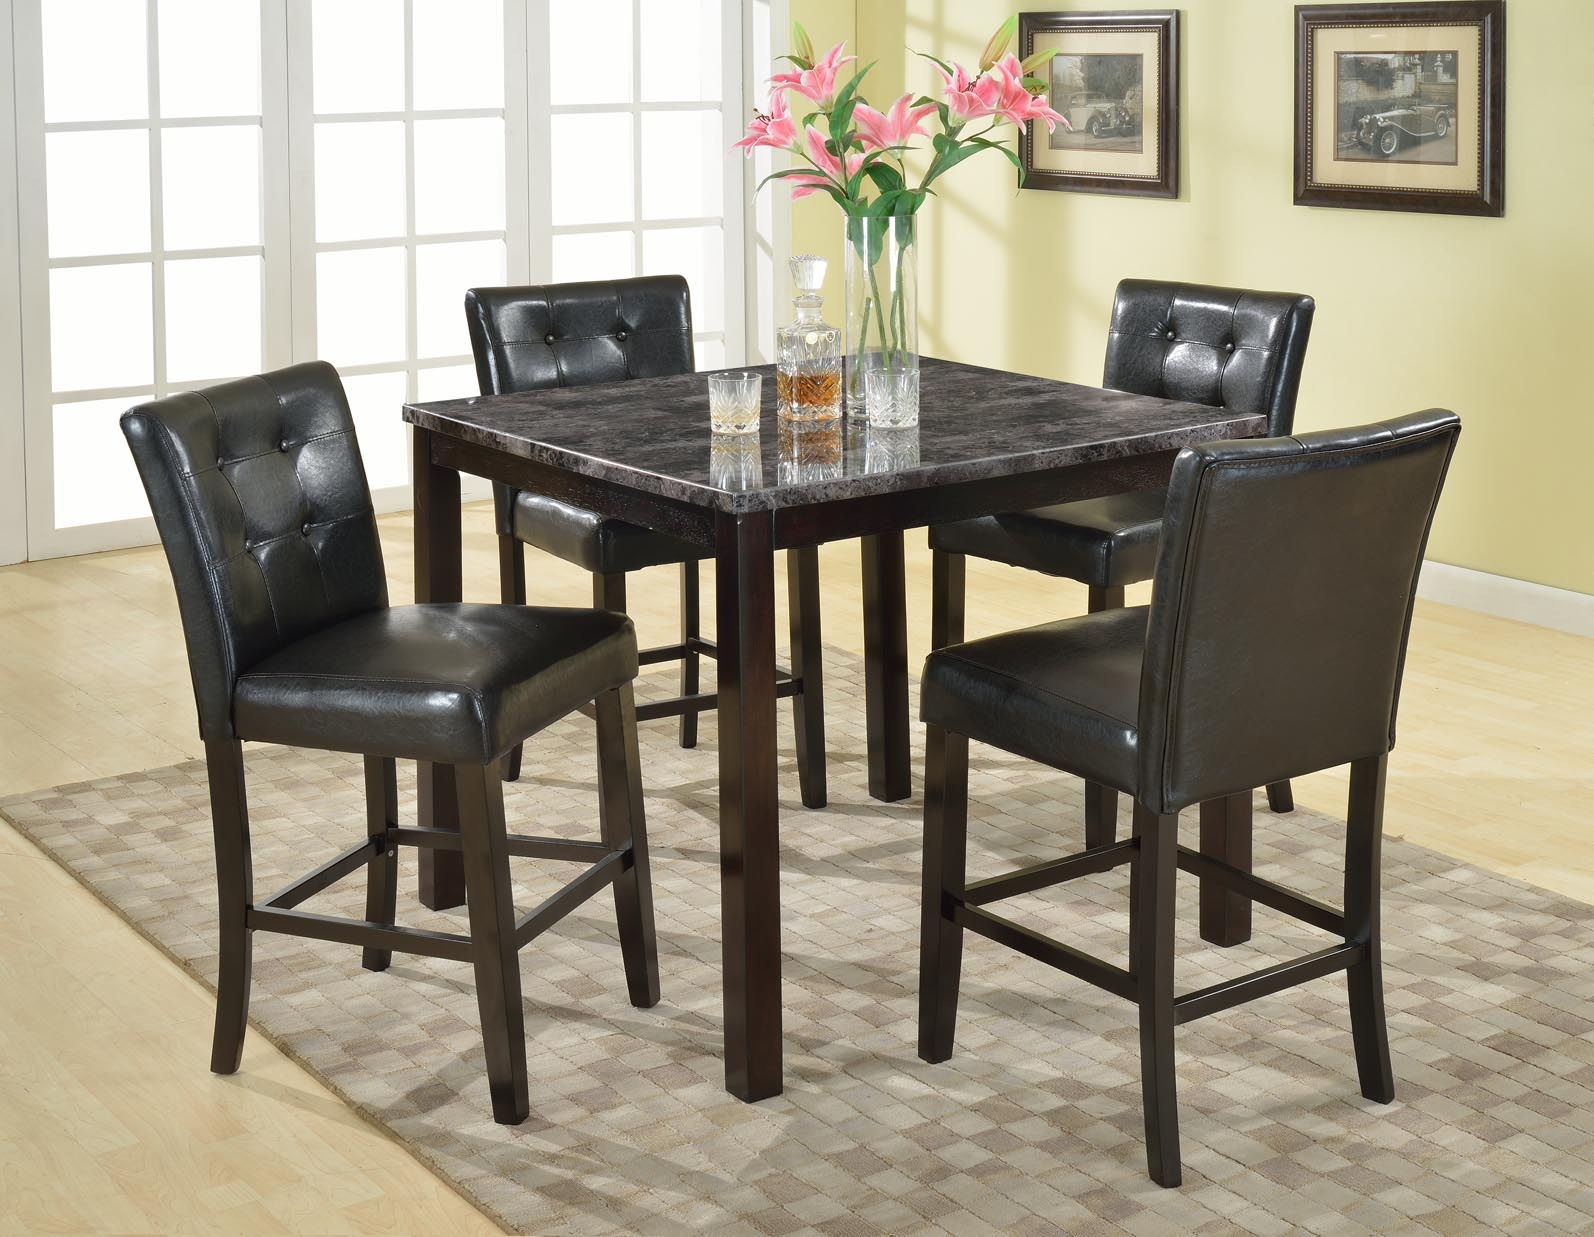 Roundhill Furniture 5-Piece Praia Artificial Dark Marble Top Pub Dining Table 4 Chairs Set & Marble Table And Chairs - Foter